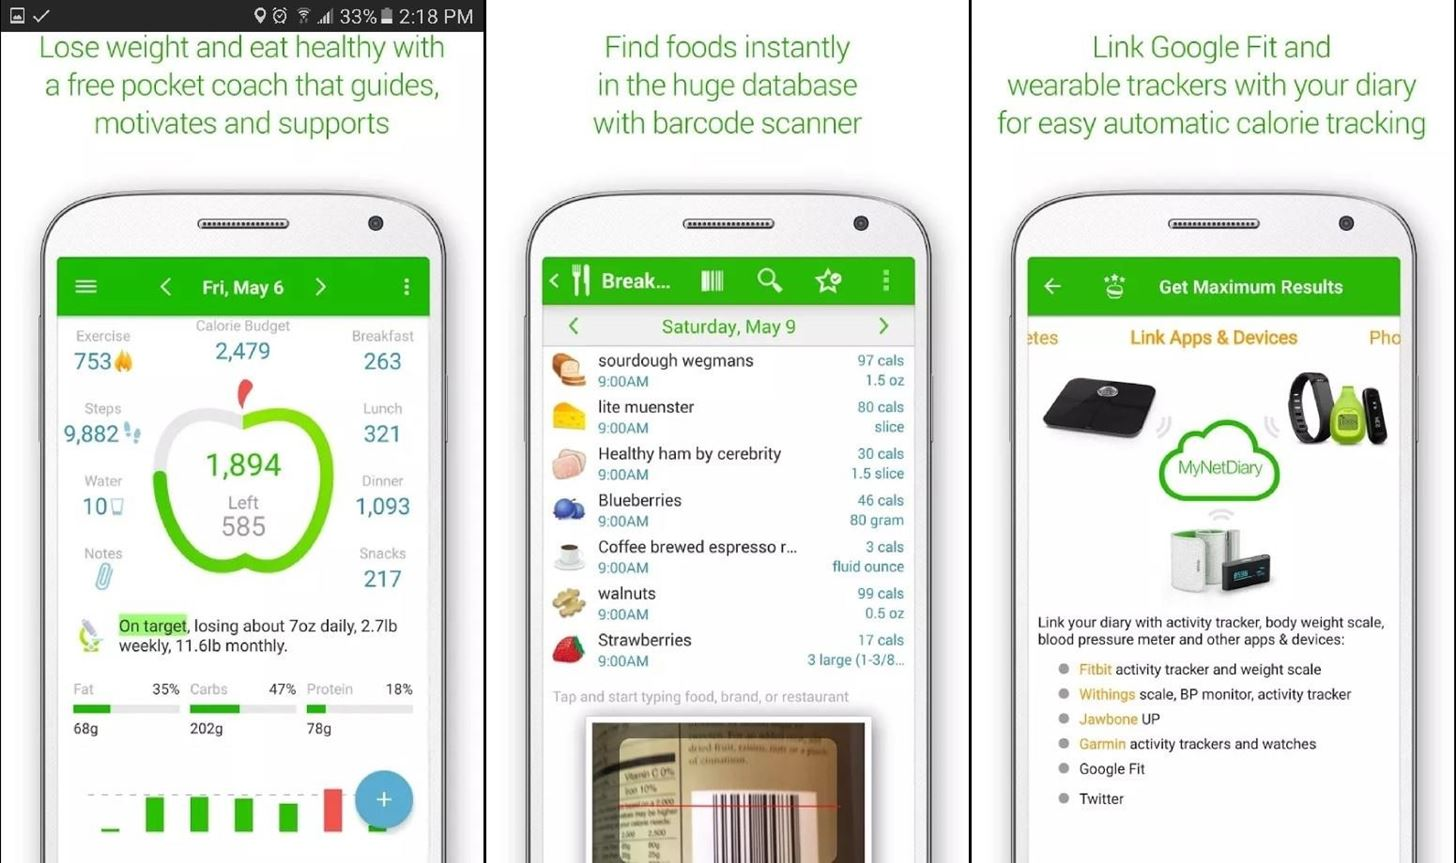 6 Apps to Help You Diet & Exercise More in the New Year